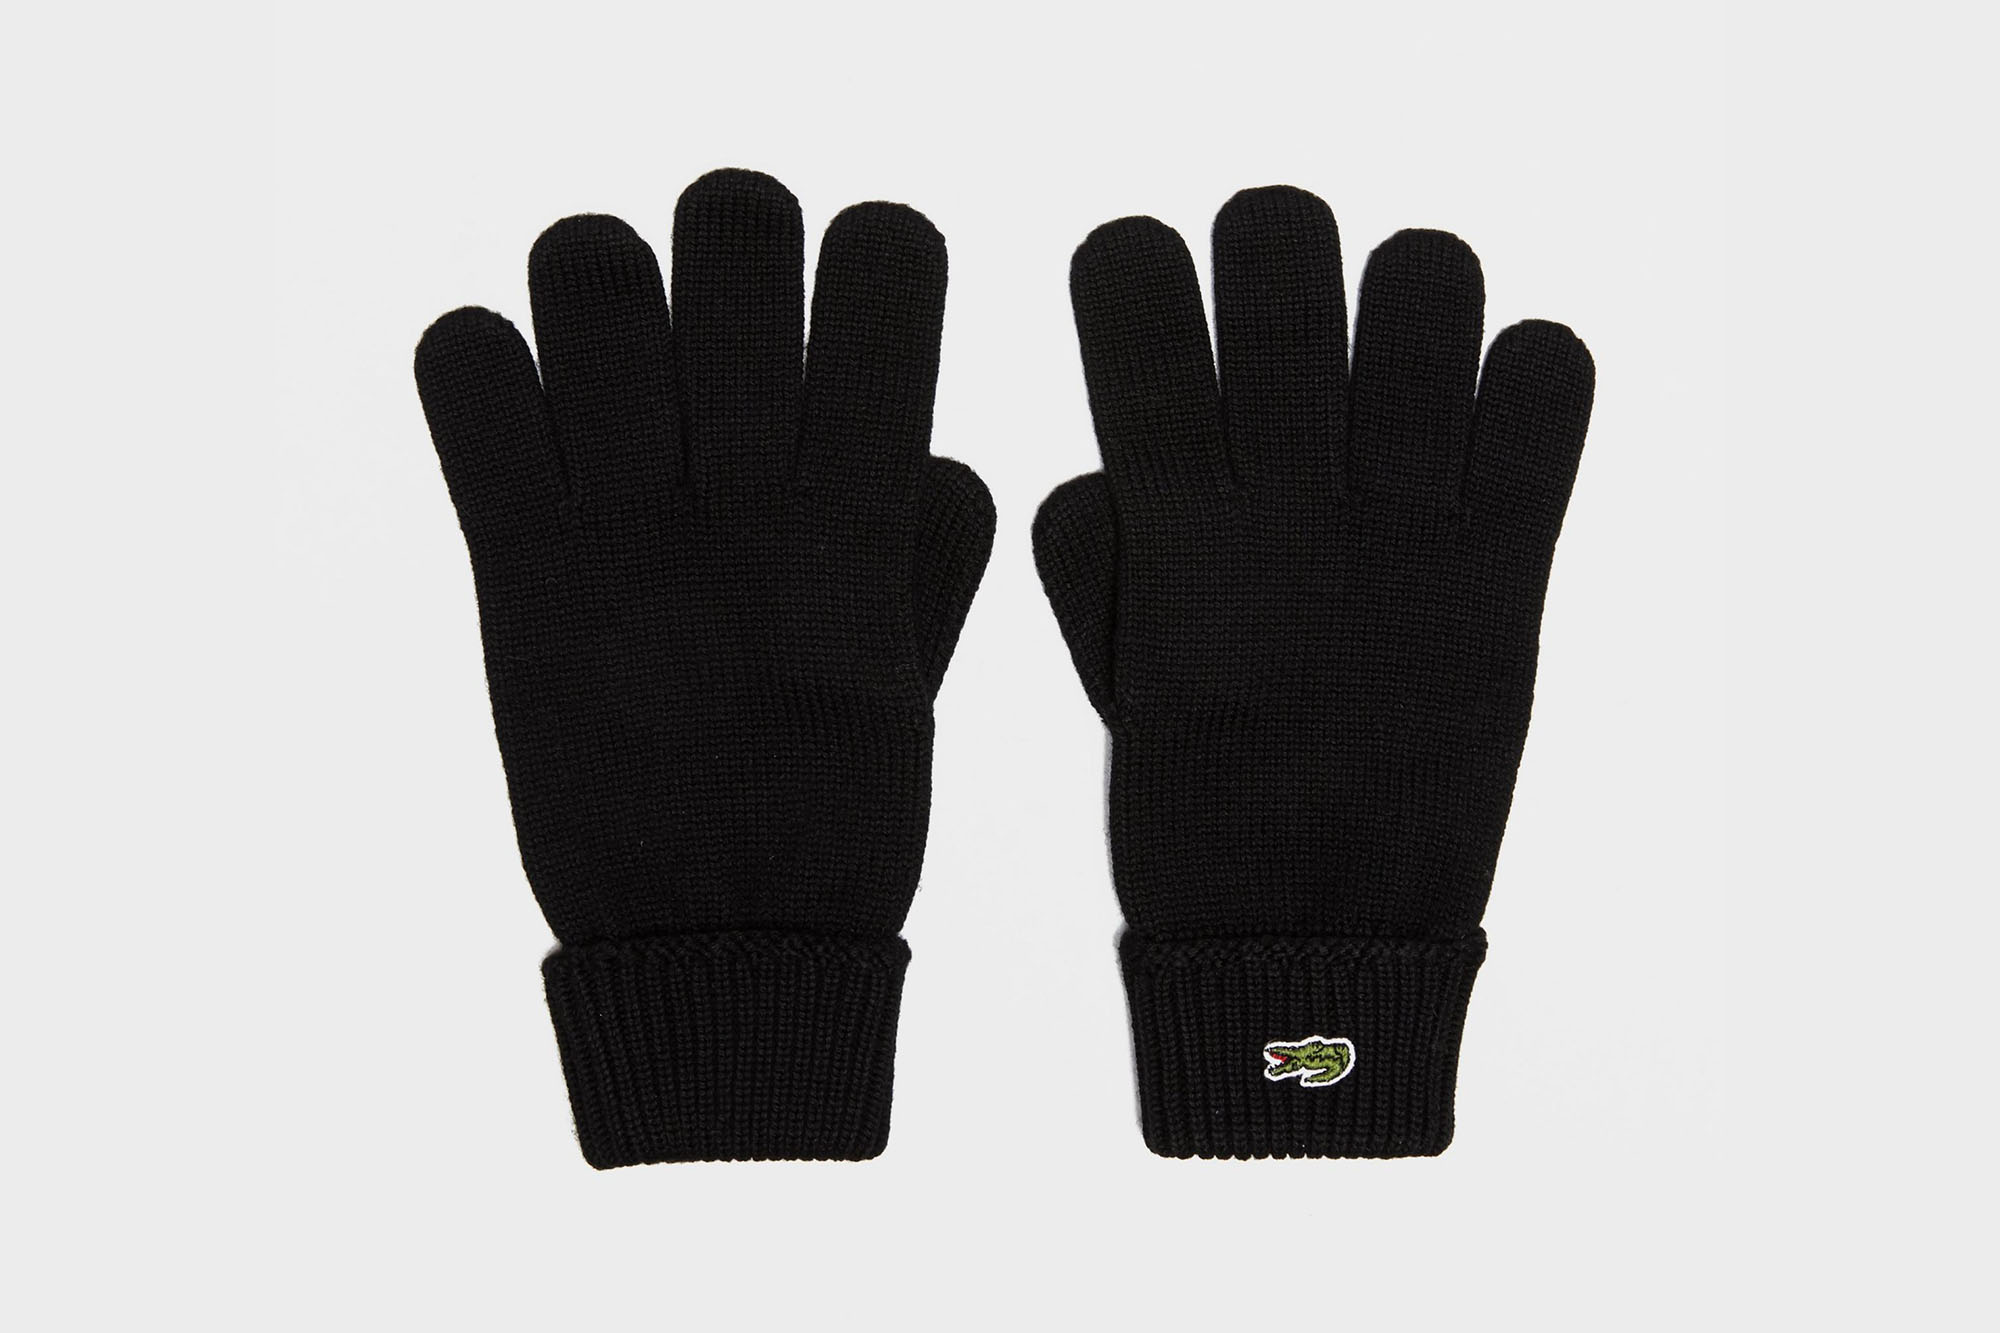 AW18 Accessories Lacoste Gloves